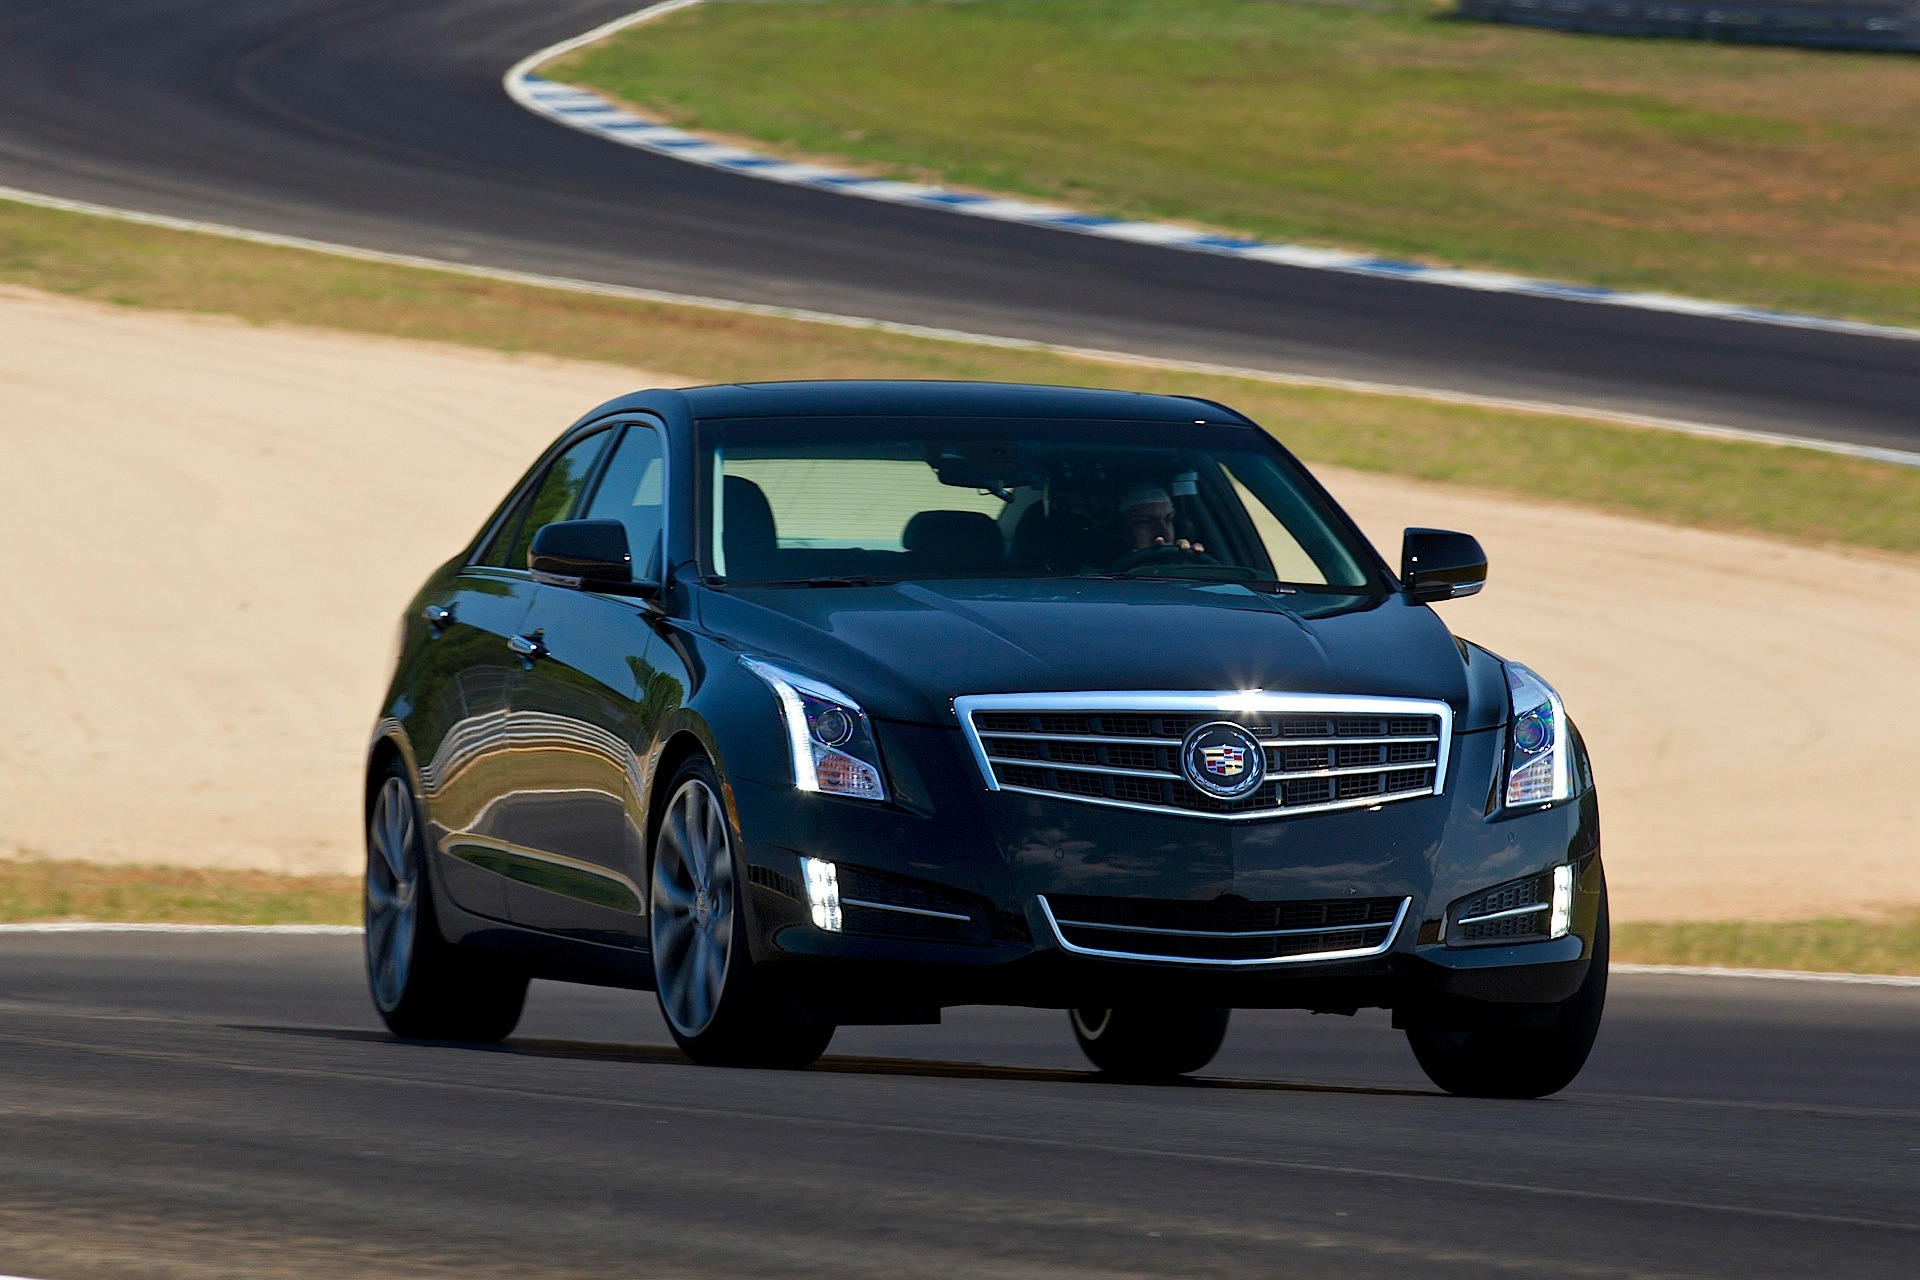 2014 Cadillac Cts For Sale >> CADILLAC ATS specs & photos - 2012, 2013, 2014, 2015, 2016, 2017, 2018 - autoevolution